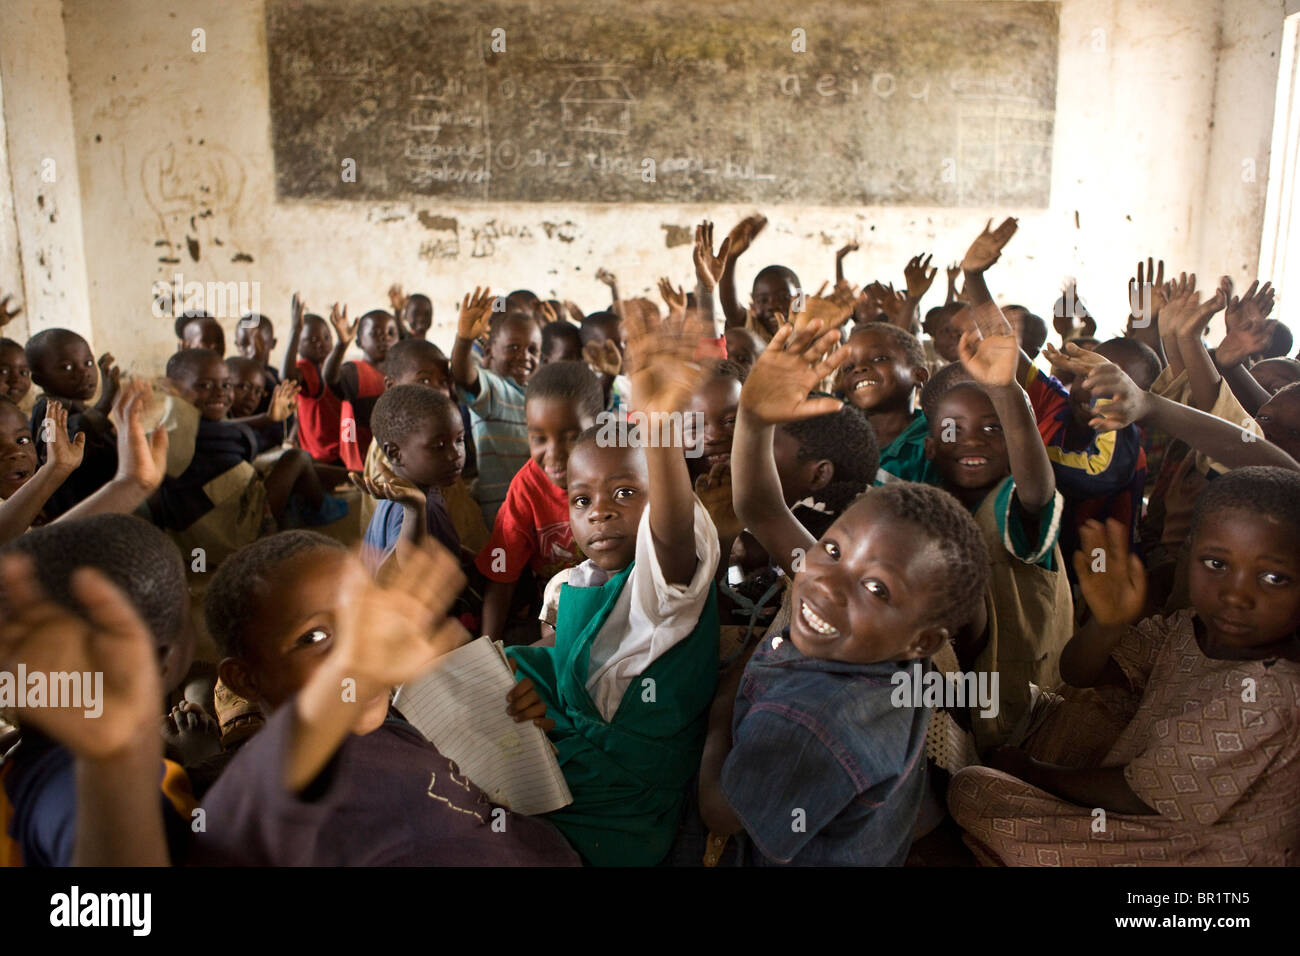 malawi chairs johannesburg whiskey barrel pub table and african school kids stock photos